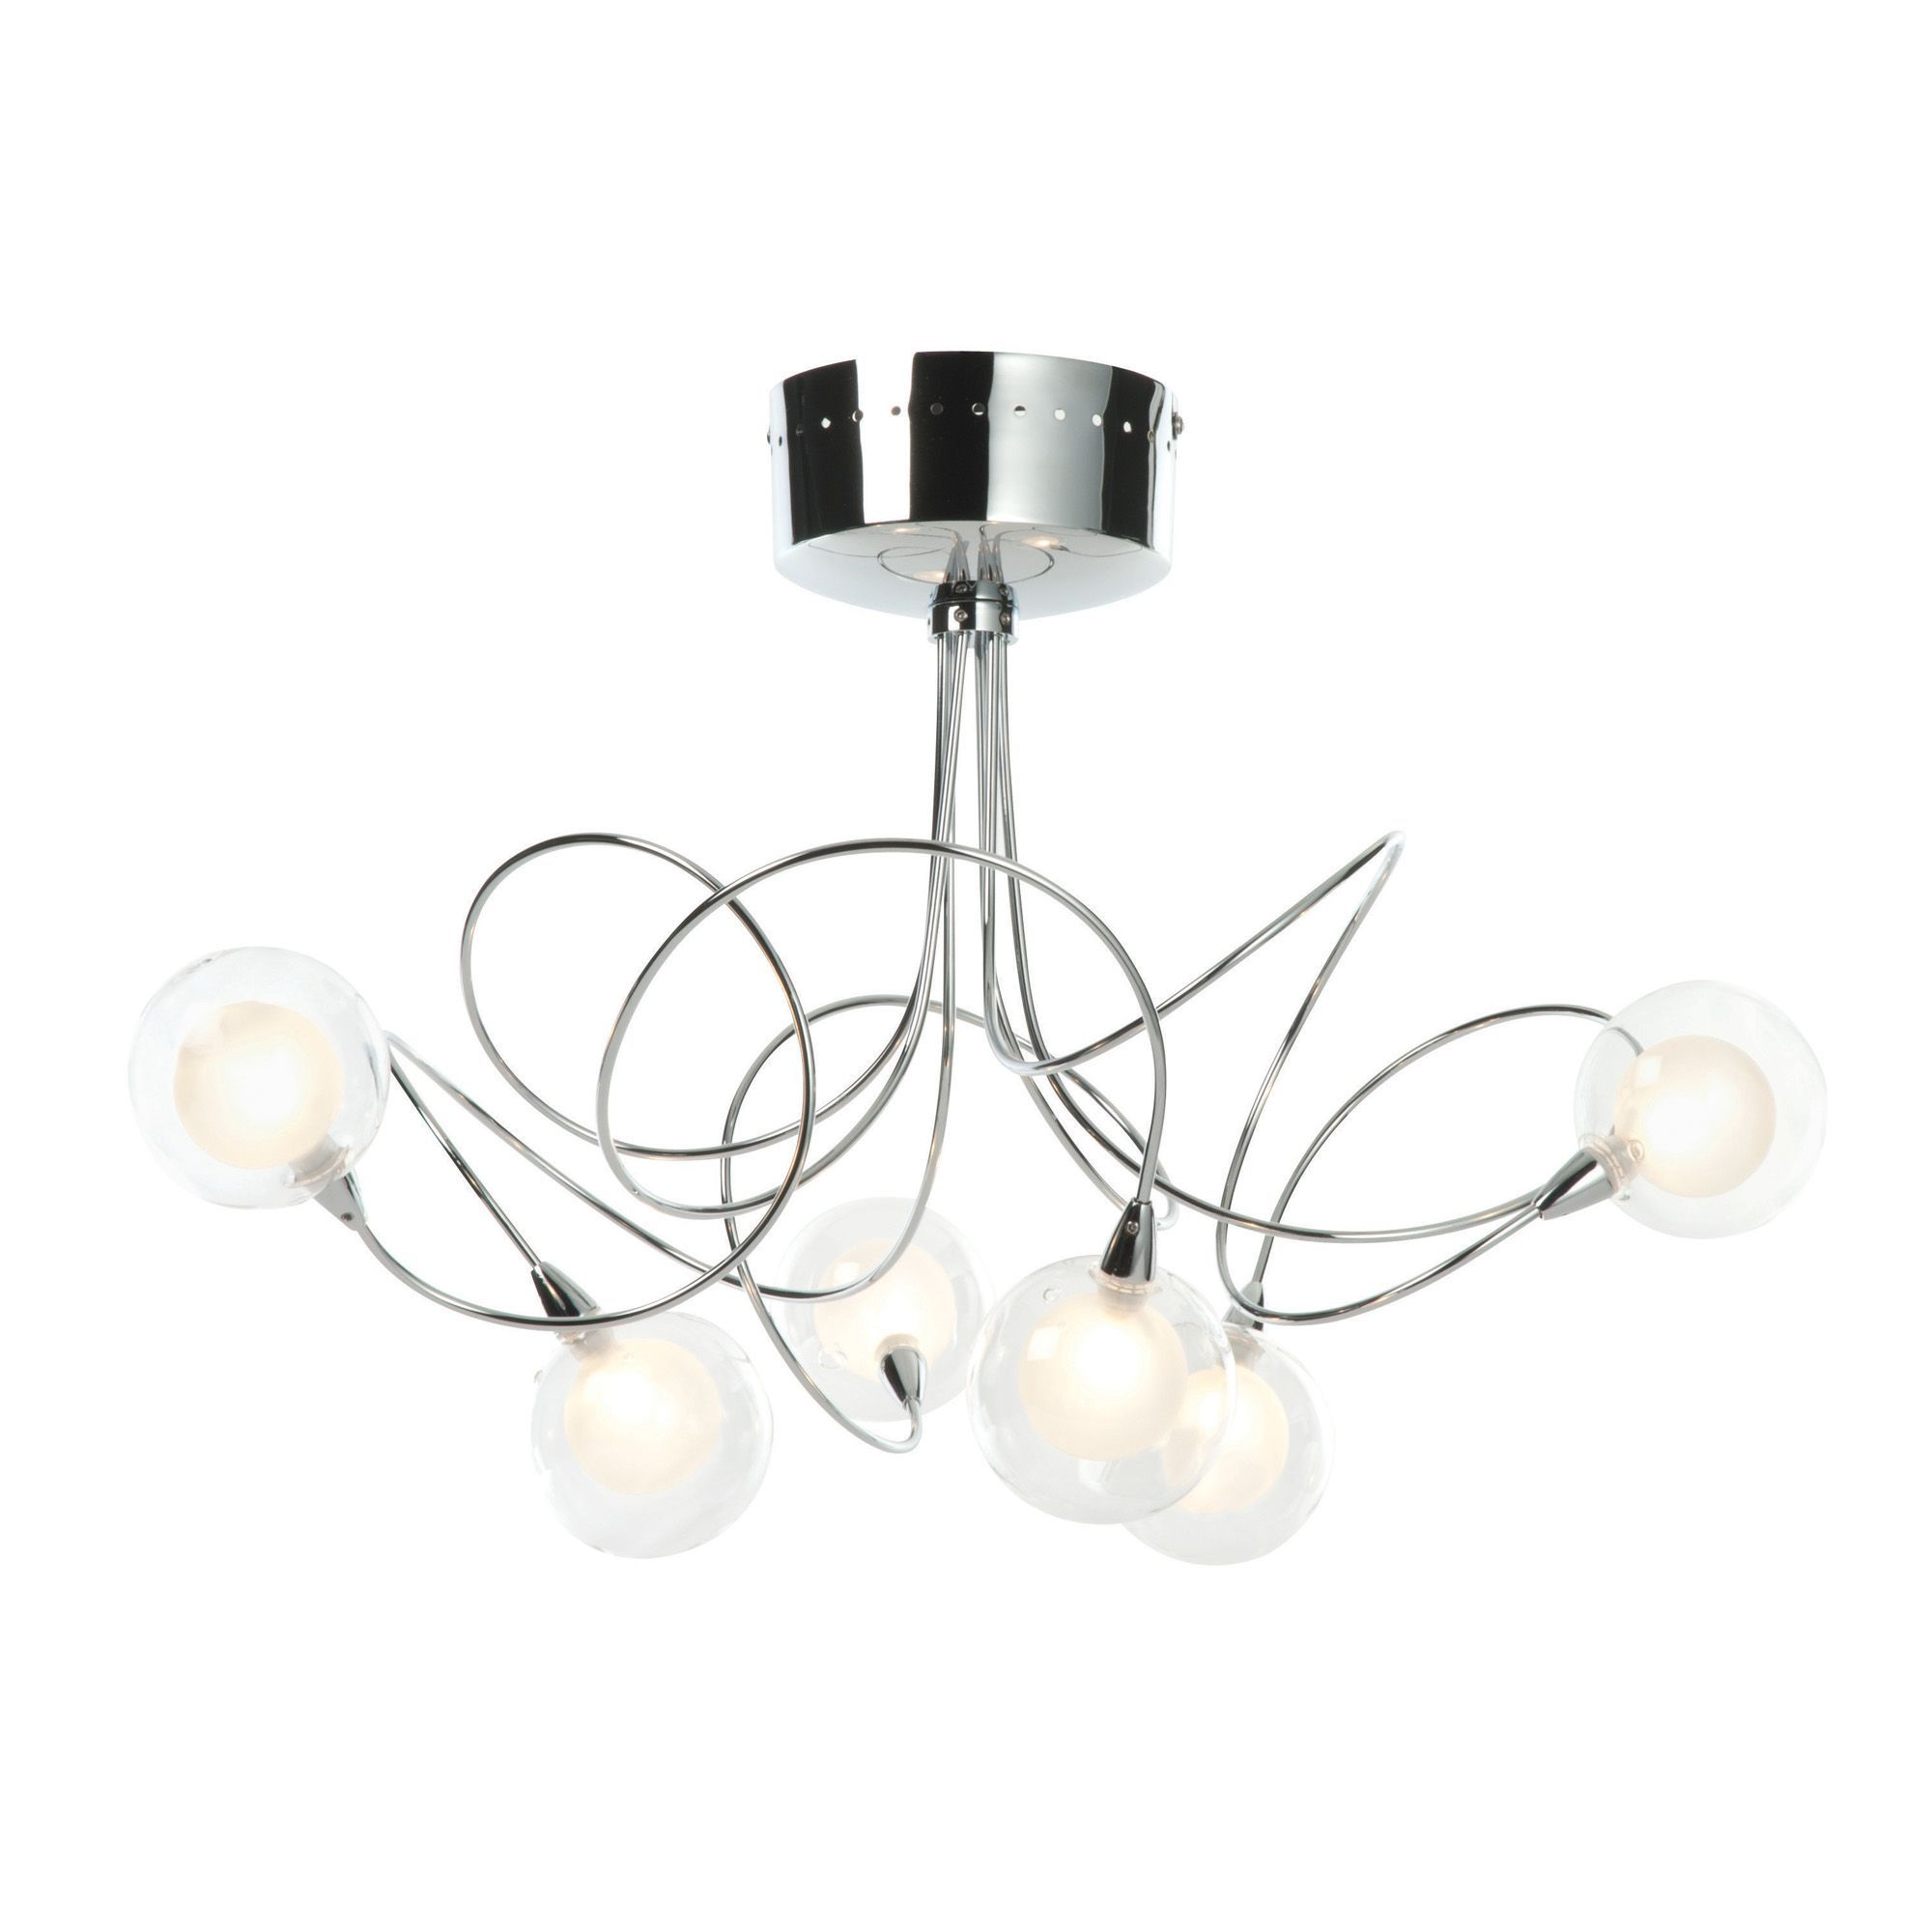 5014838507414_01c freefall loop arm chrome effect 6 lamp semi flush ceiling light Wiring a Chandelier Diagram at eliteediting.co